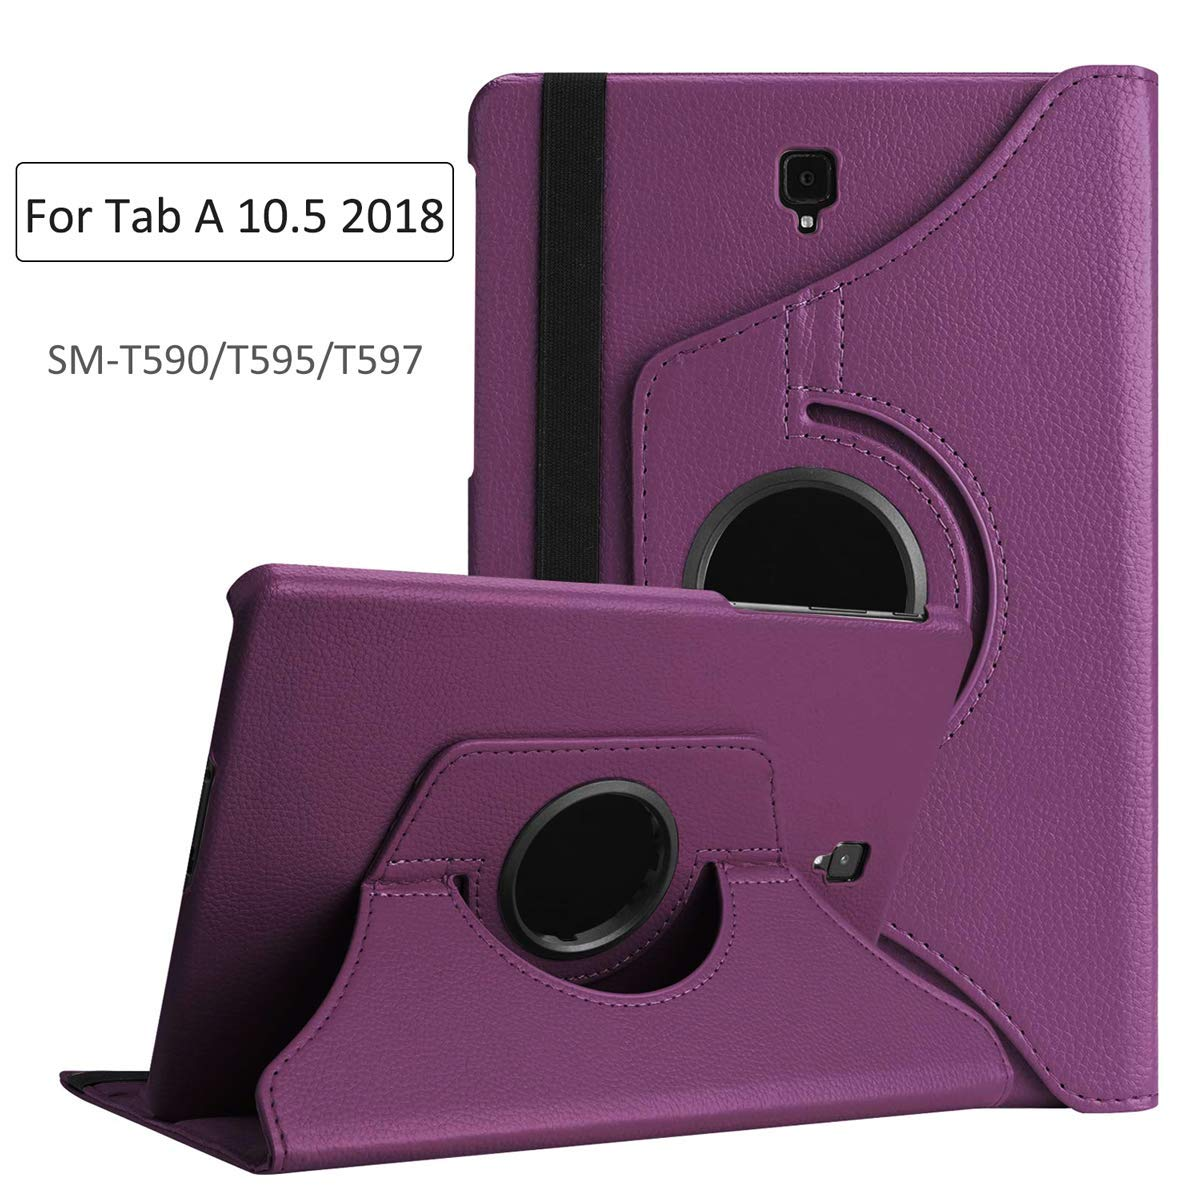 360 Degree Rotatable Leather Smart Case For Samsung Galaxy Tab A 10.5 Cover T590 T595 T597 SM-T590 2018 Awake Sleep Cover Funda